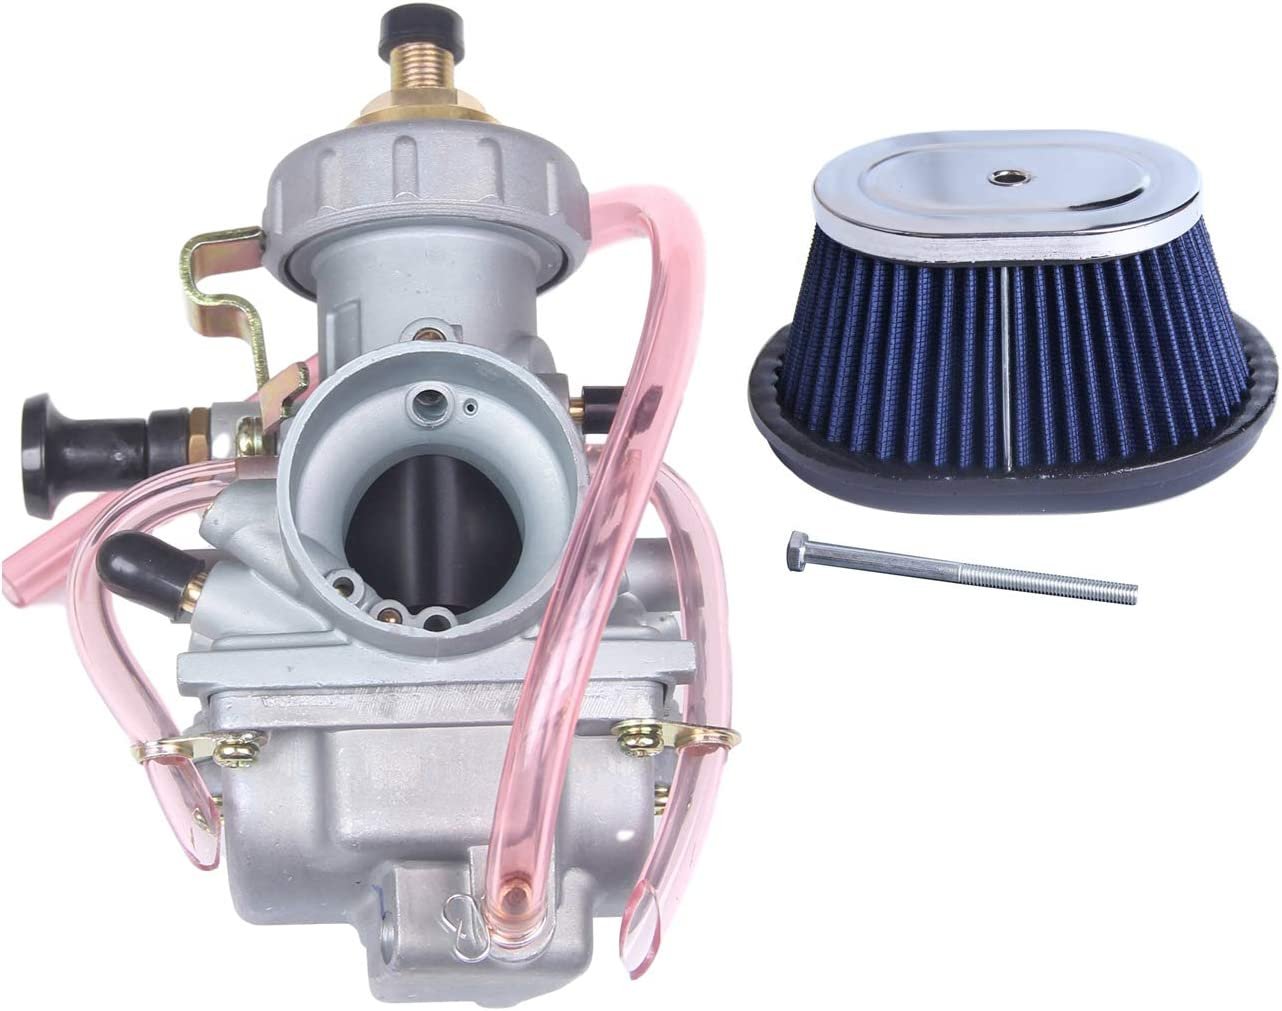 BH-Motor New Max 43% OFF Carburetor Air Luxury goods Filter Cleaner Yamaha Bl For Element